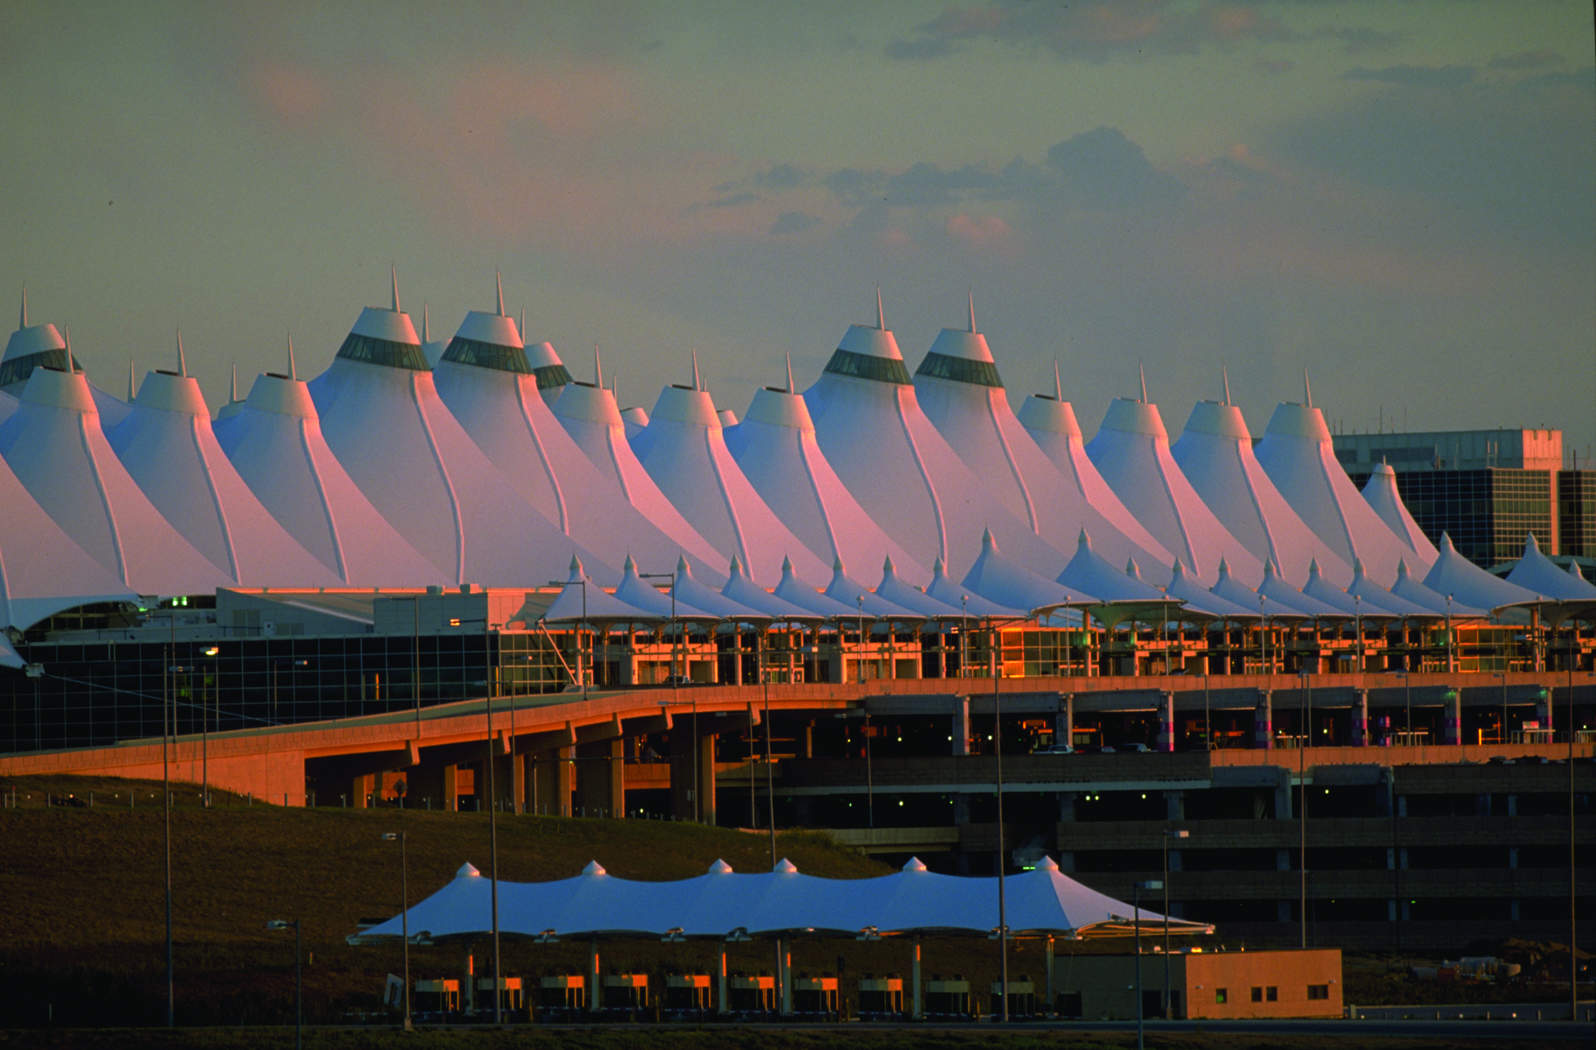 Money and timesaving tips and restaurant bar and store suggestions for Denver International Airport